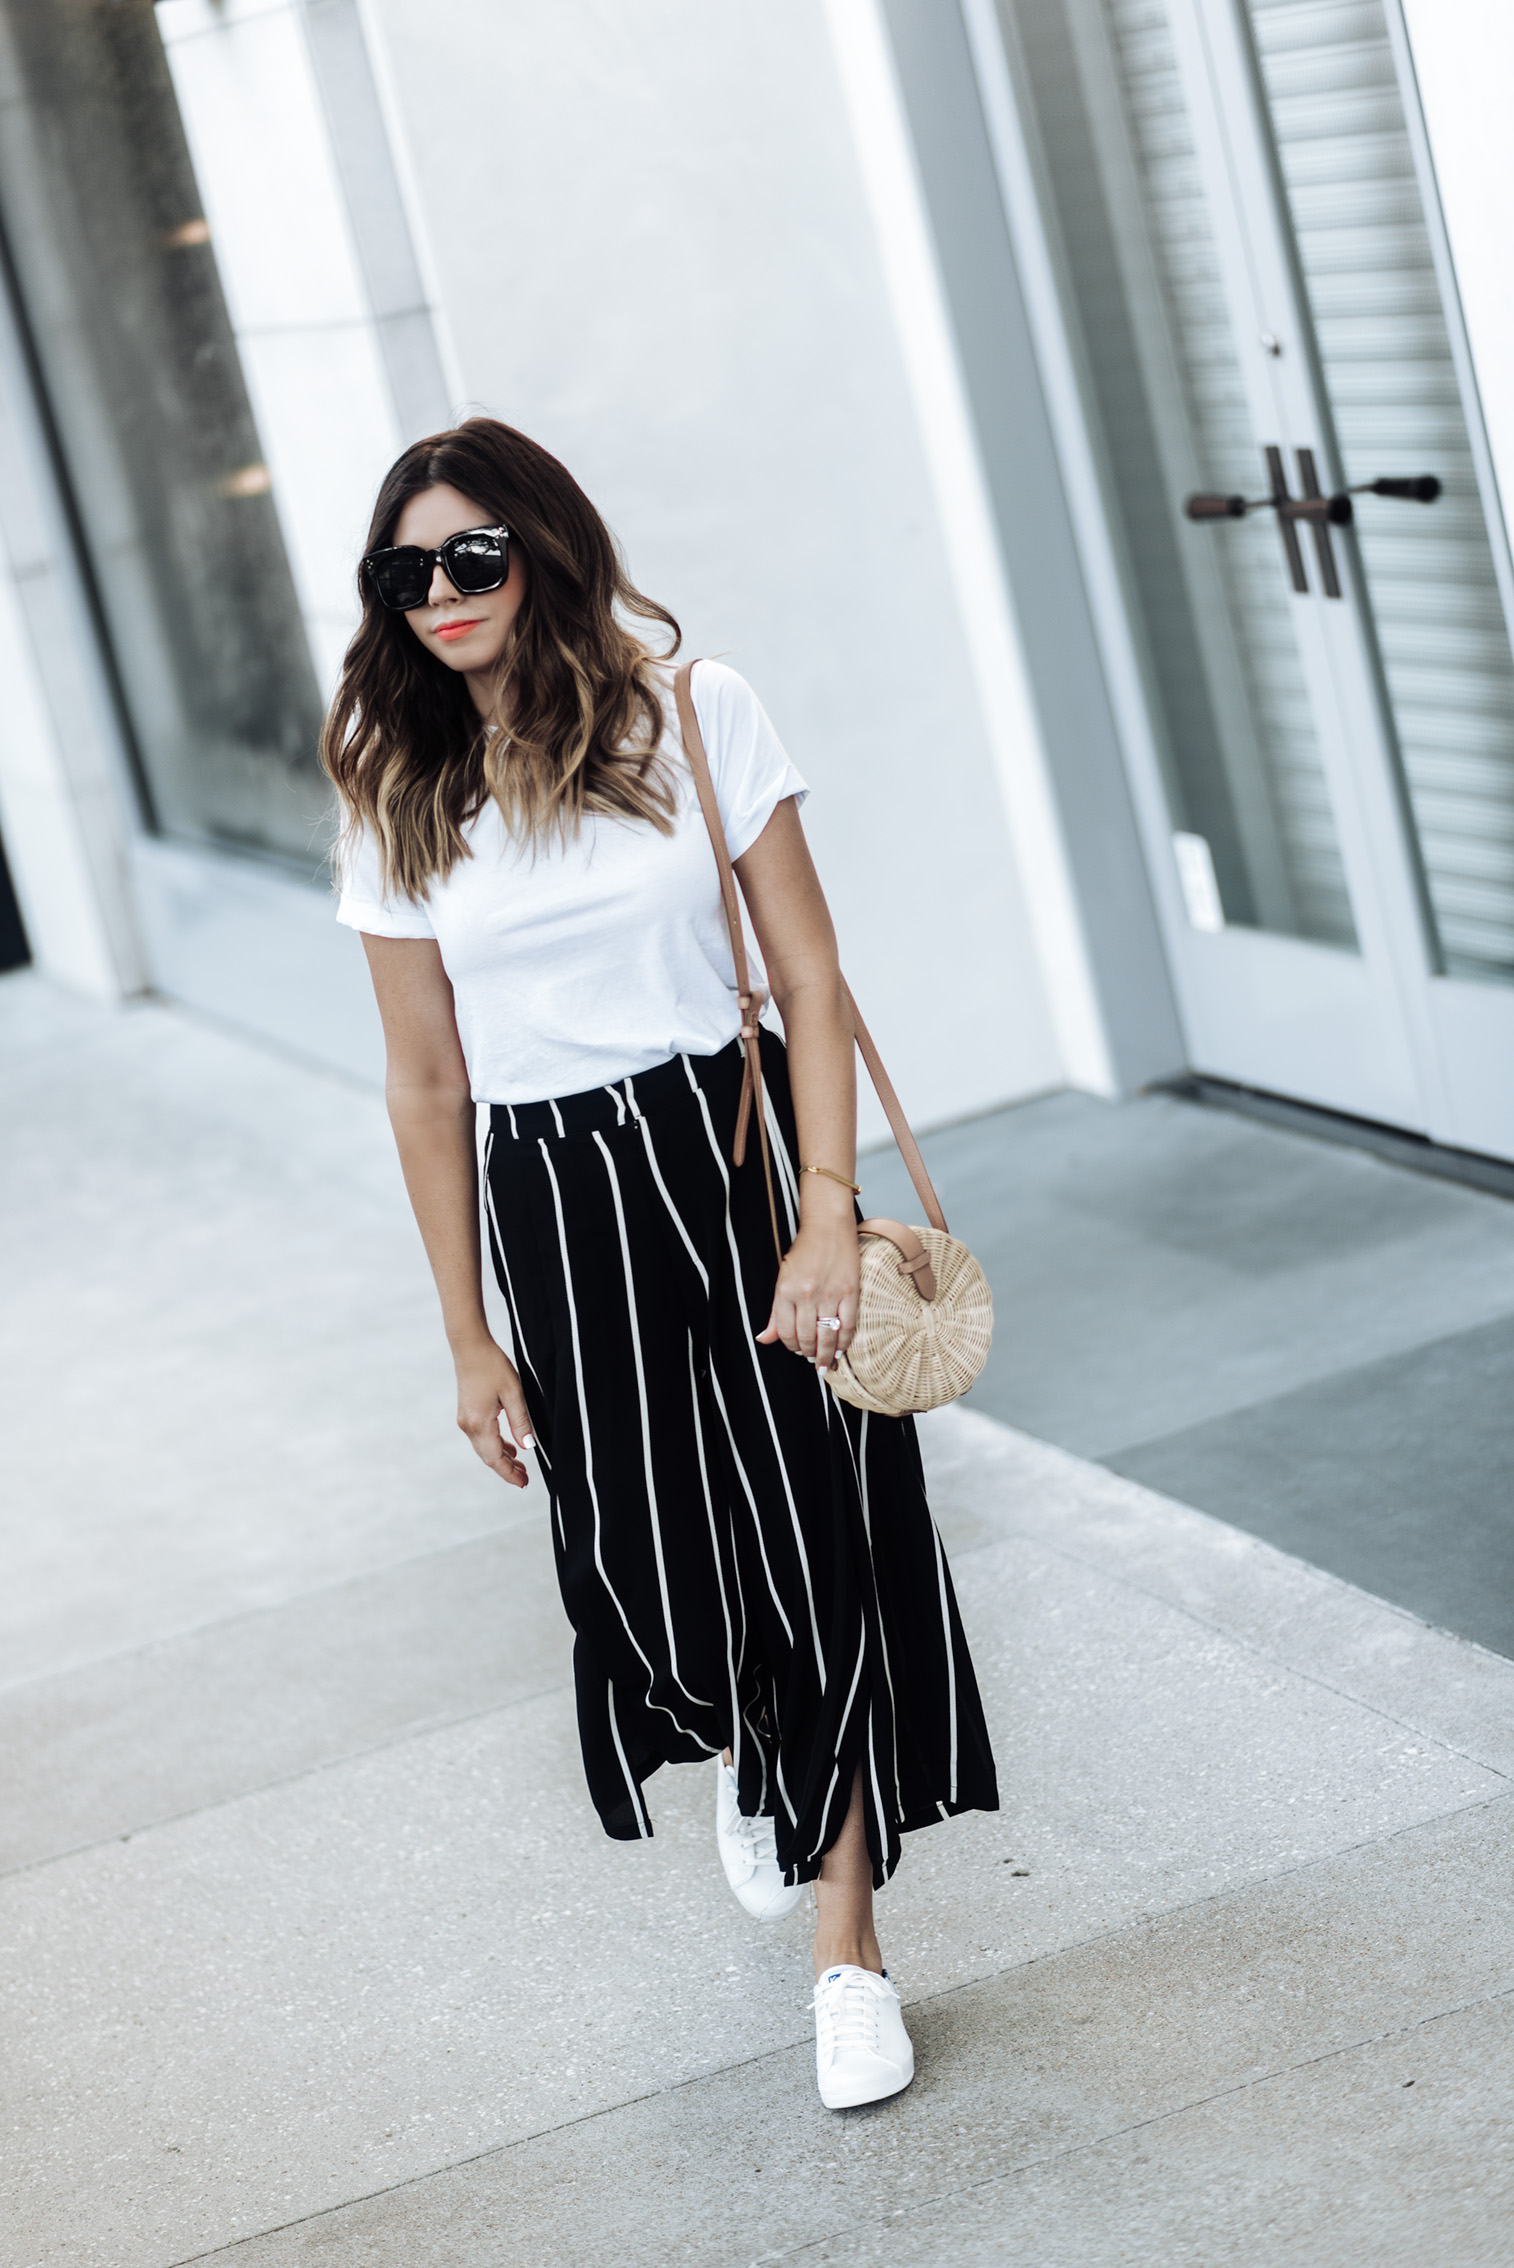 Tiffany Jais fashion and lifestyle blogger of Flaunt and Center | Houston fashion blogger | Streetstyle blog | {C/O Keds | Striped pants (Similar style) | White tee (similar) | Bag |